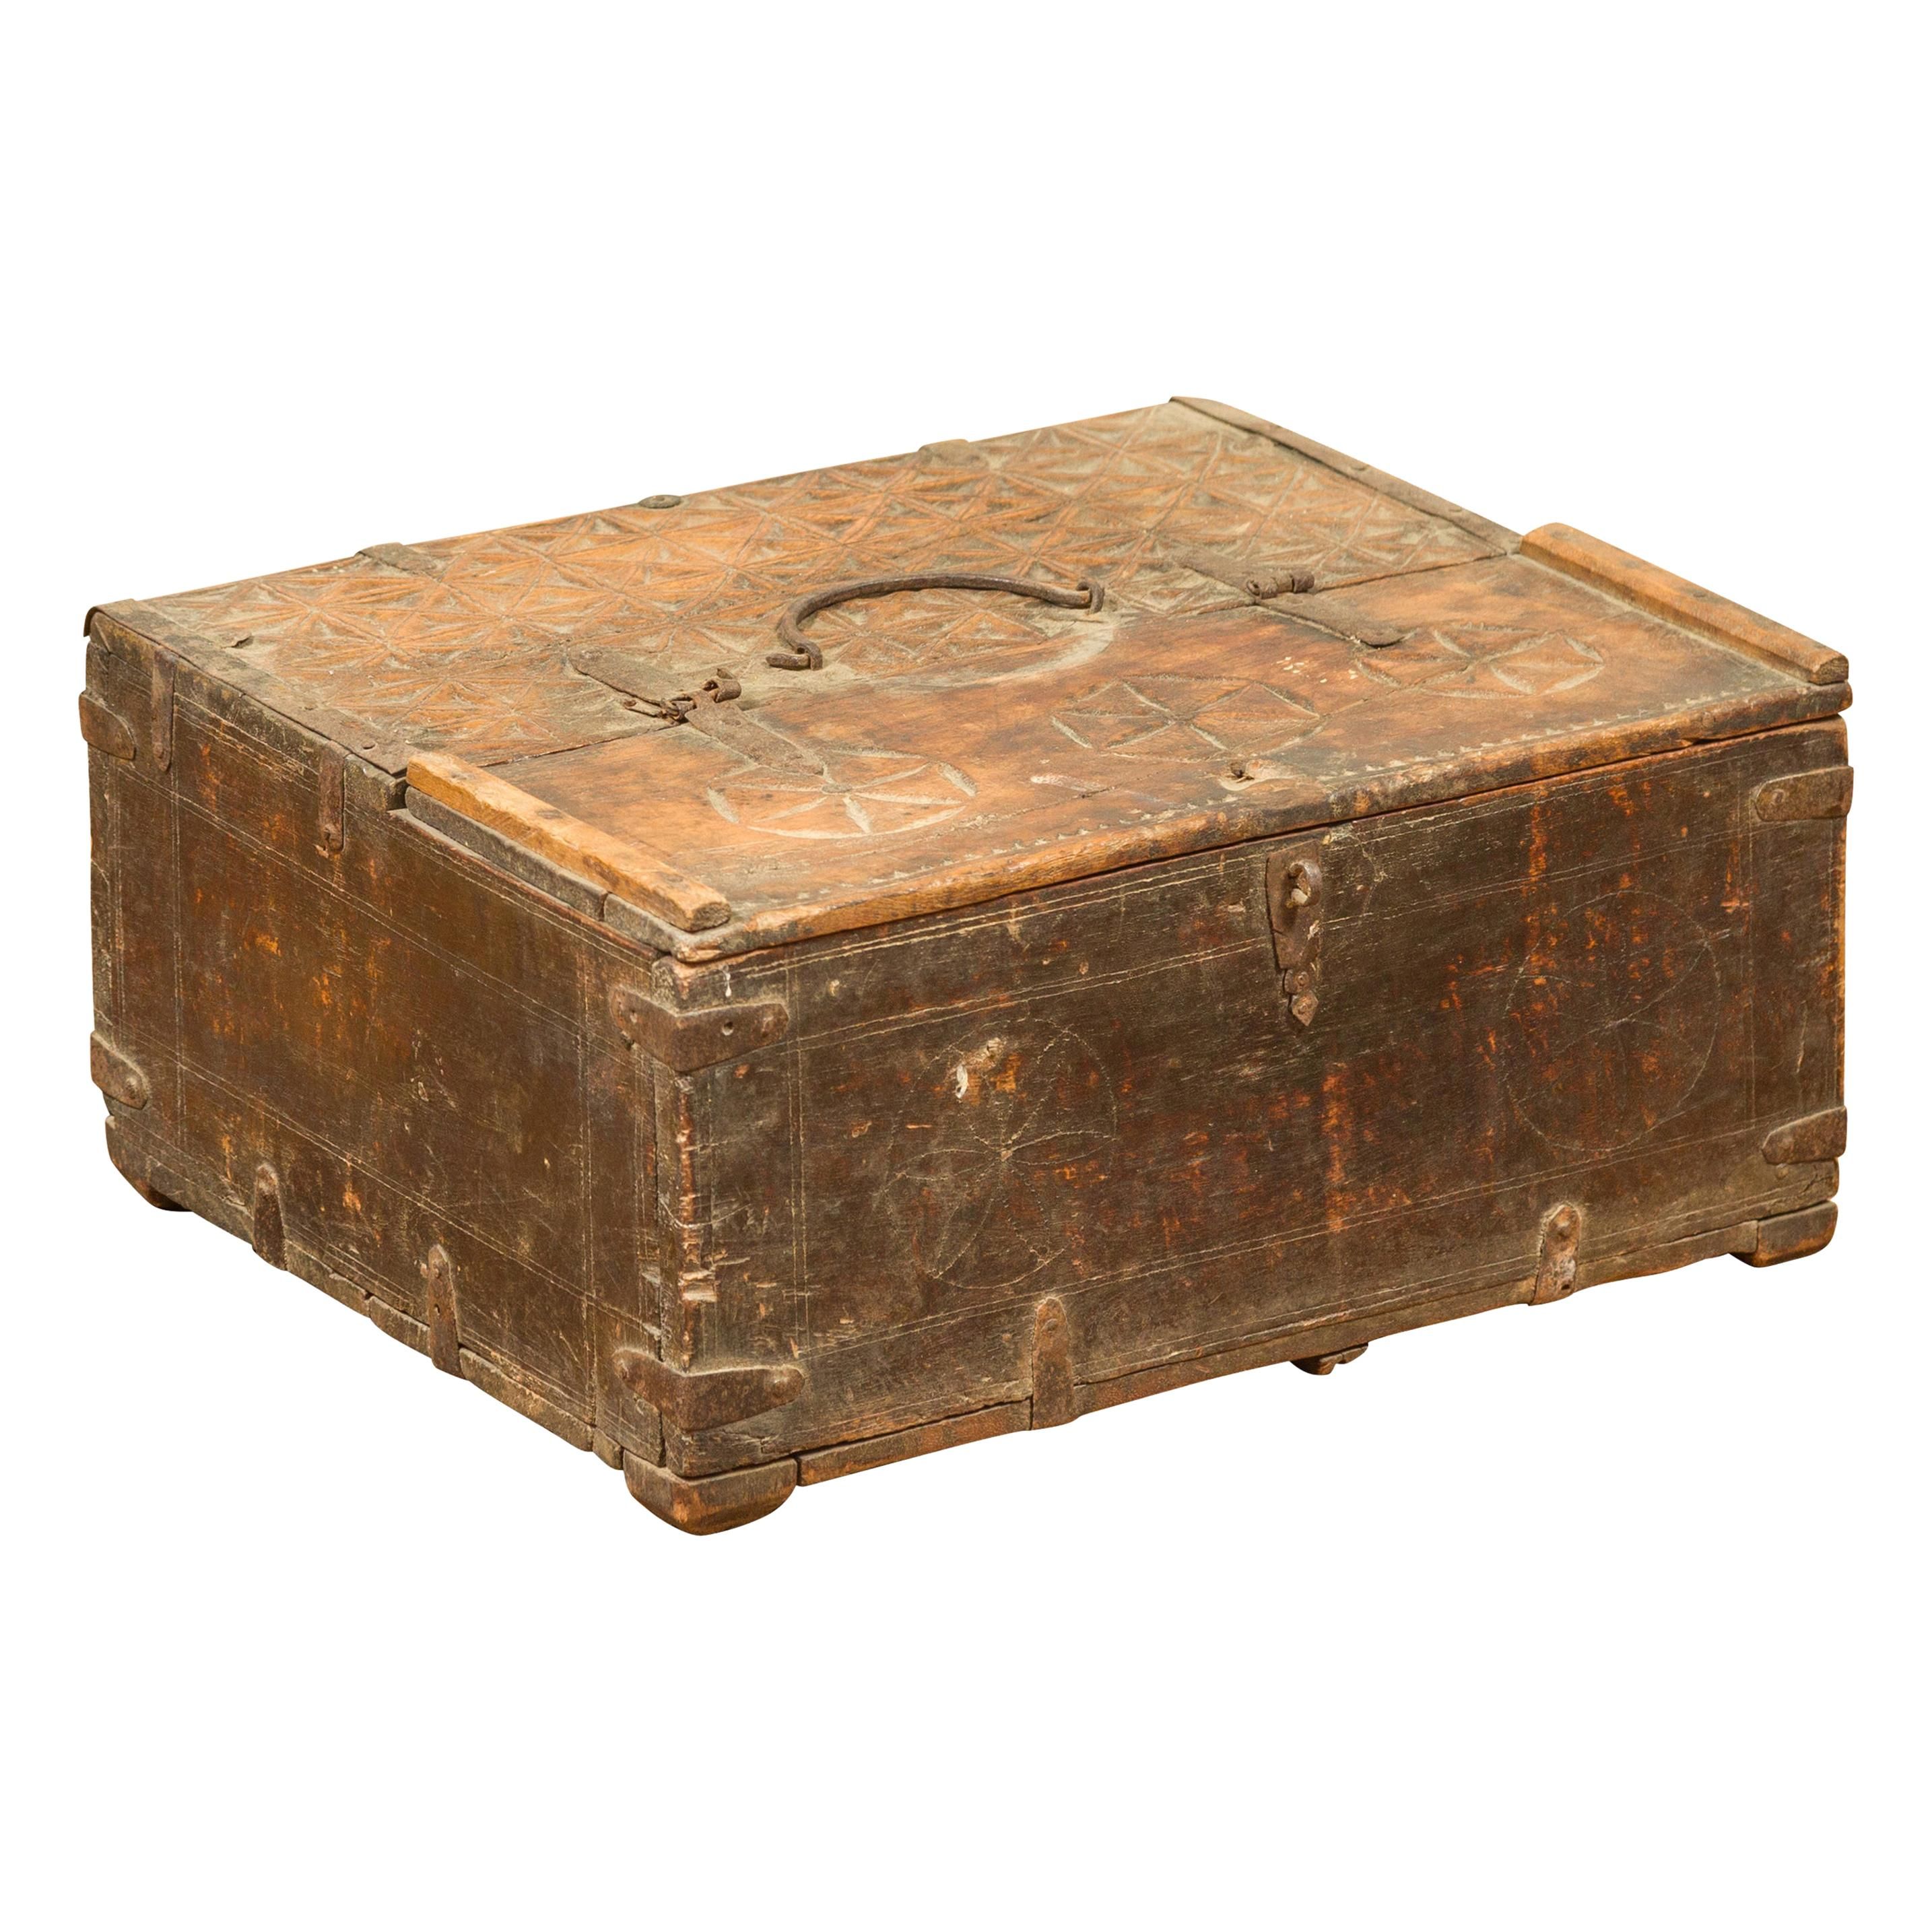 Indian Antique Wooden Dowry Box with Geometric Motifs and Weathered Patina